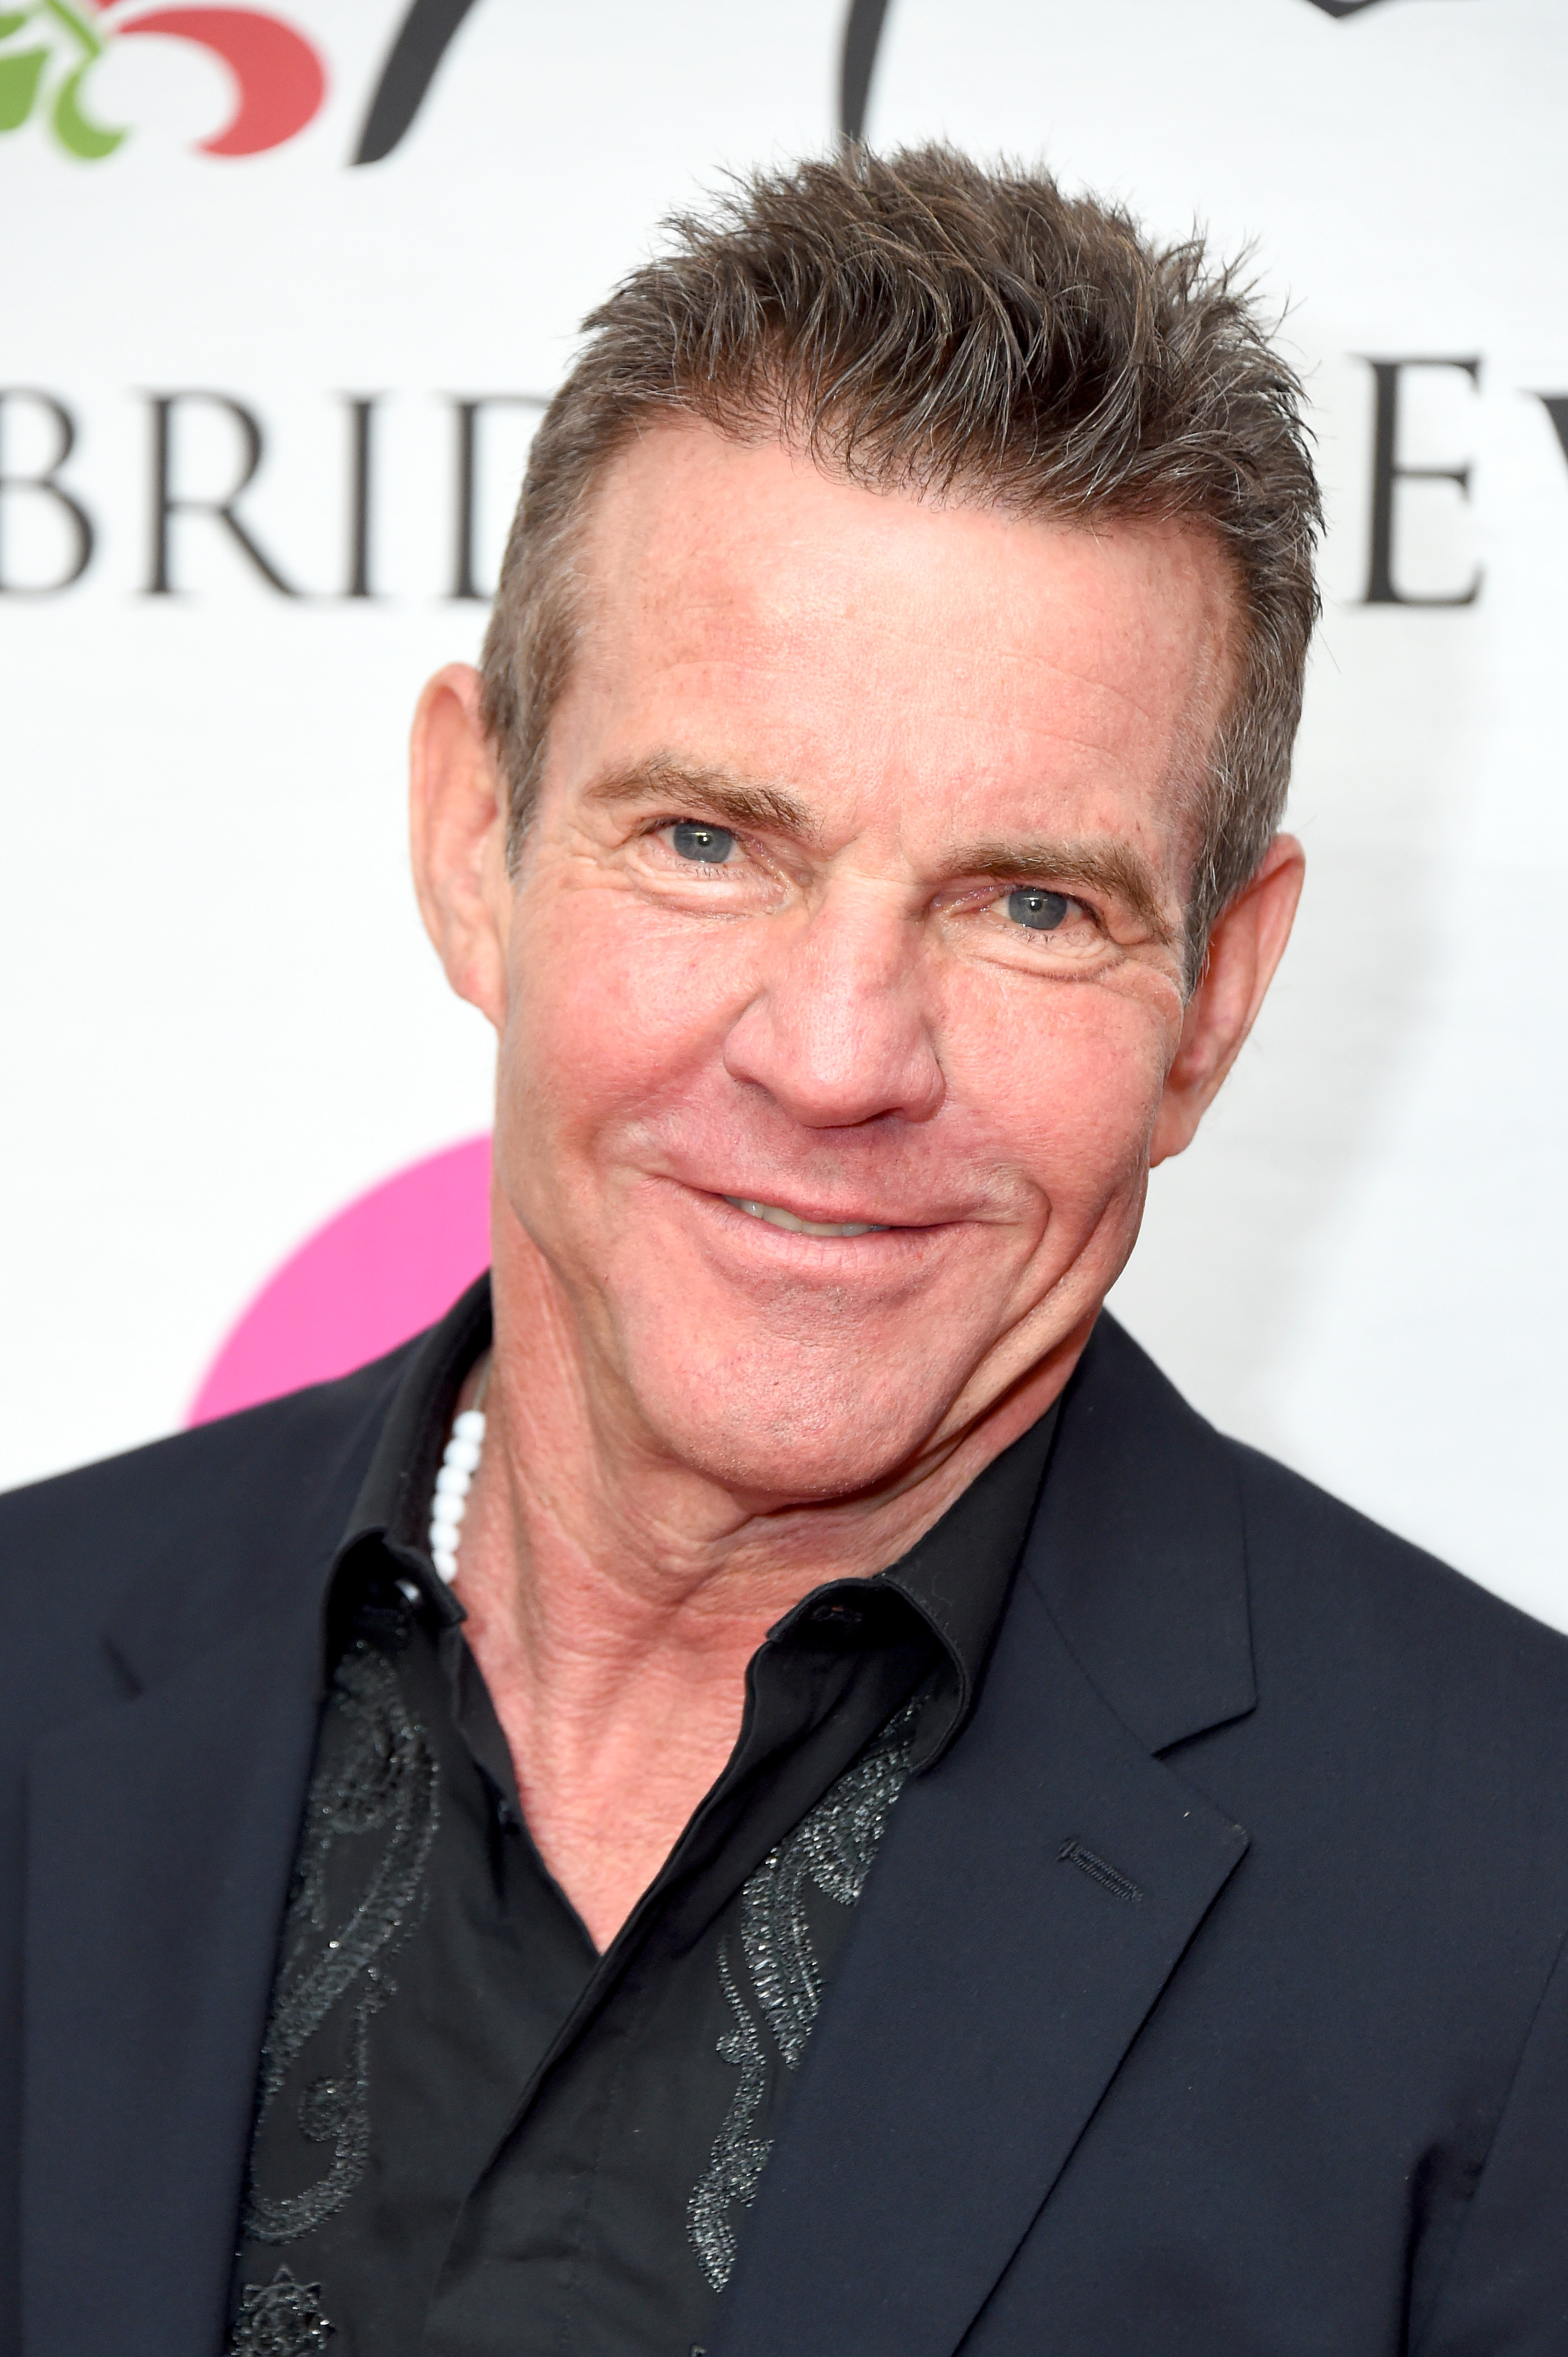 Actor/musician Dennis Quaid attends the Unbridled Eve Gala during the 144th Kentucky Derby at Galt House Hotel & Suites on May 4, 2018 in Louisville, Kentucky. (Photo by Michael Loccisano/Getty Images fro Unbridled Eve)